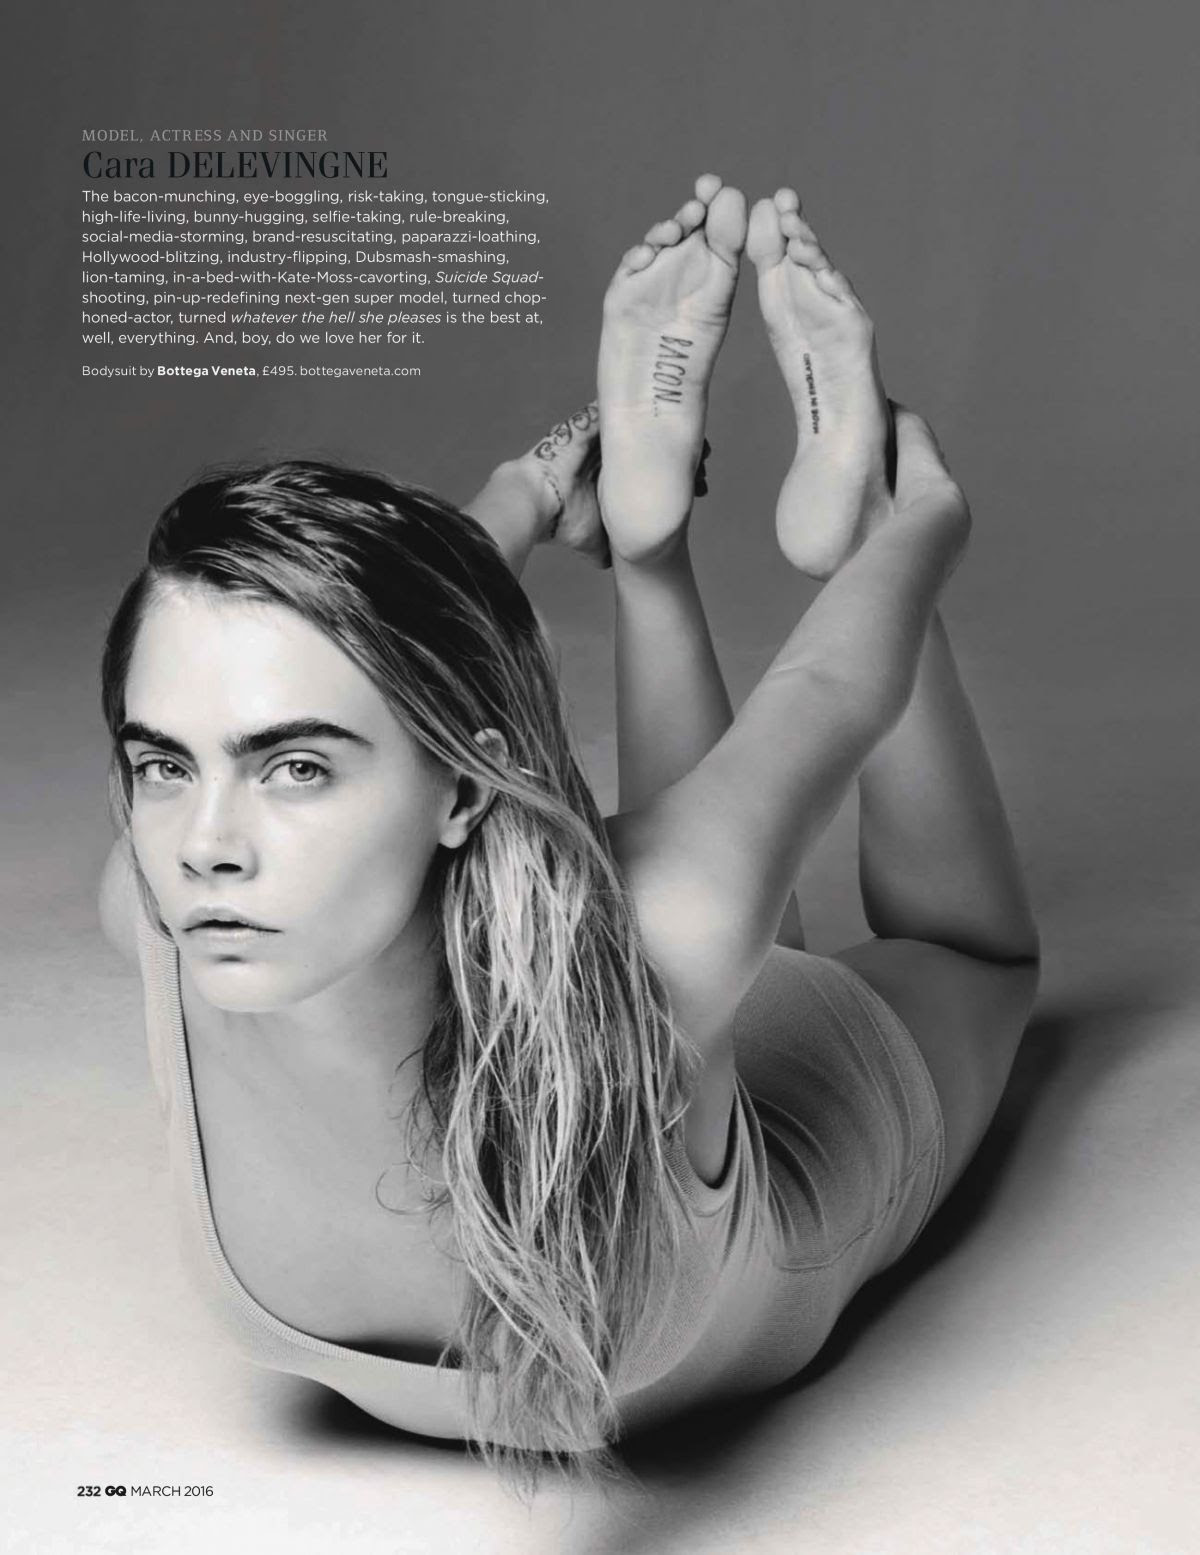 CARA DELEVINGNE in GQ Magazine, March 2016 Issue